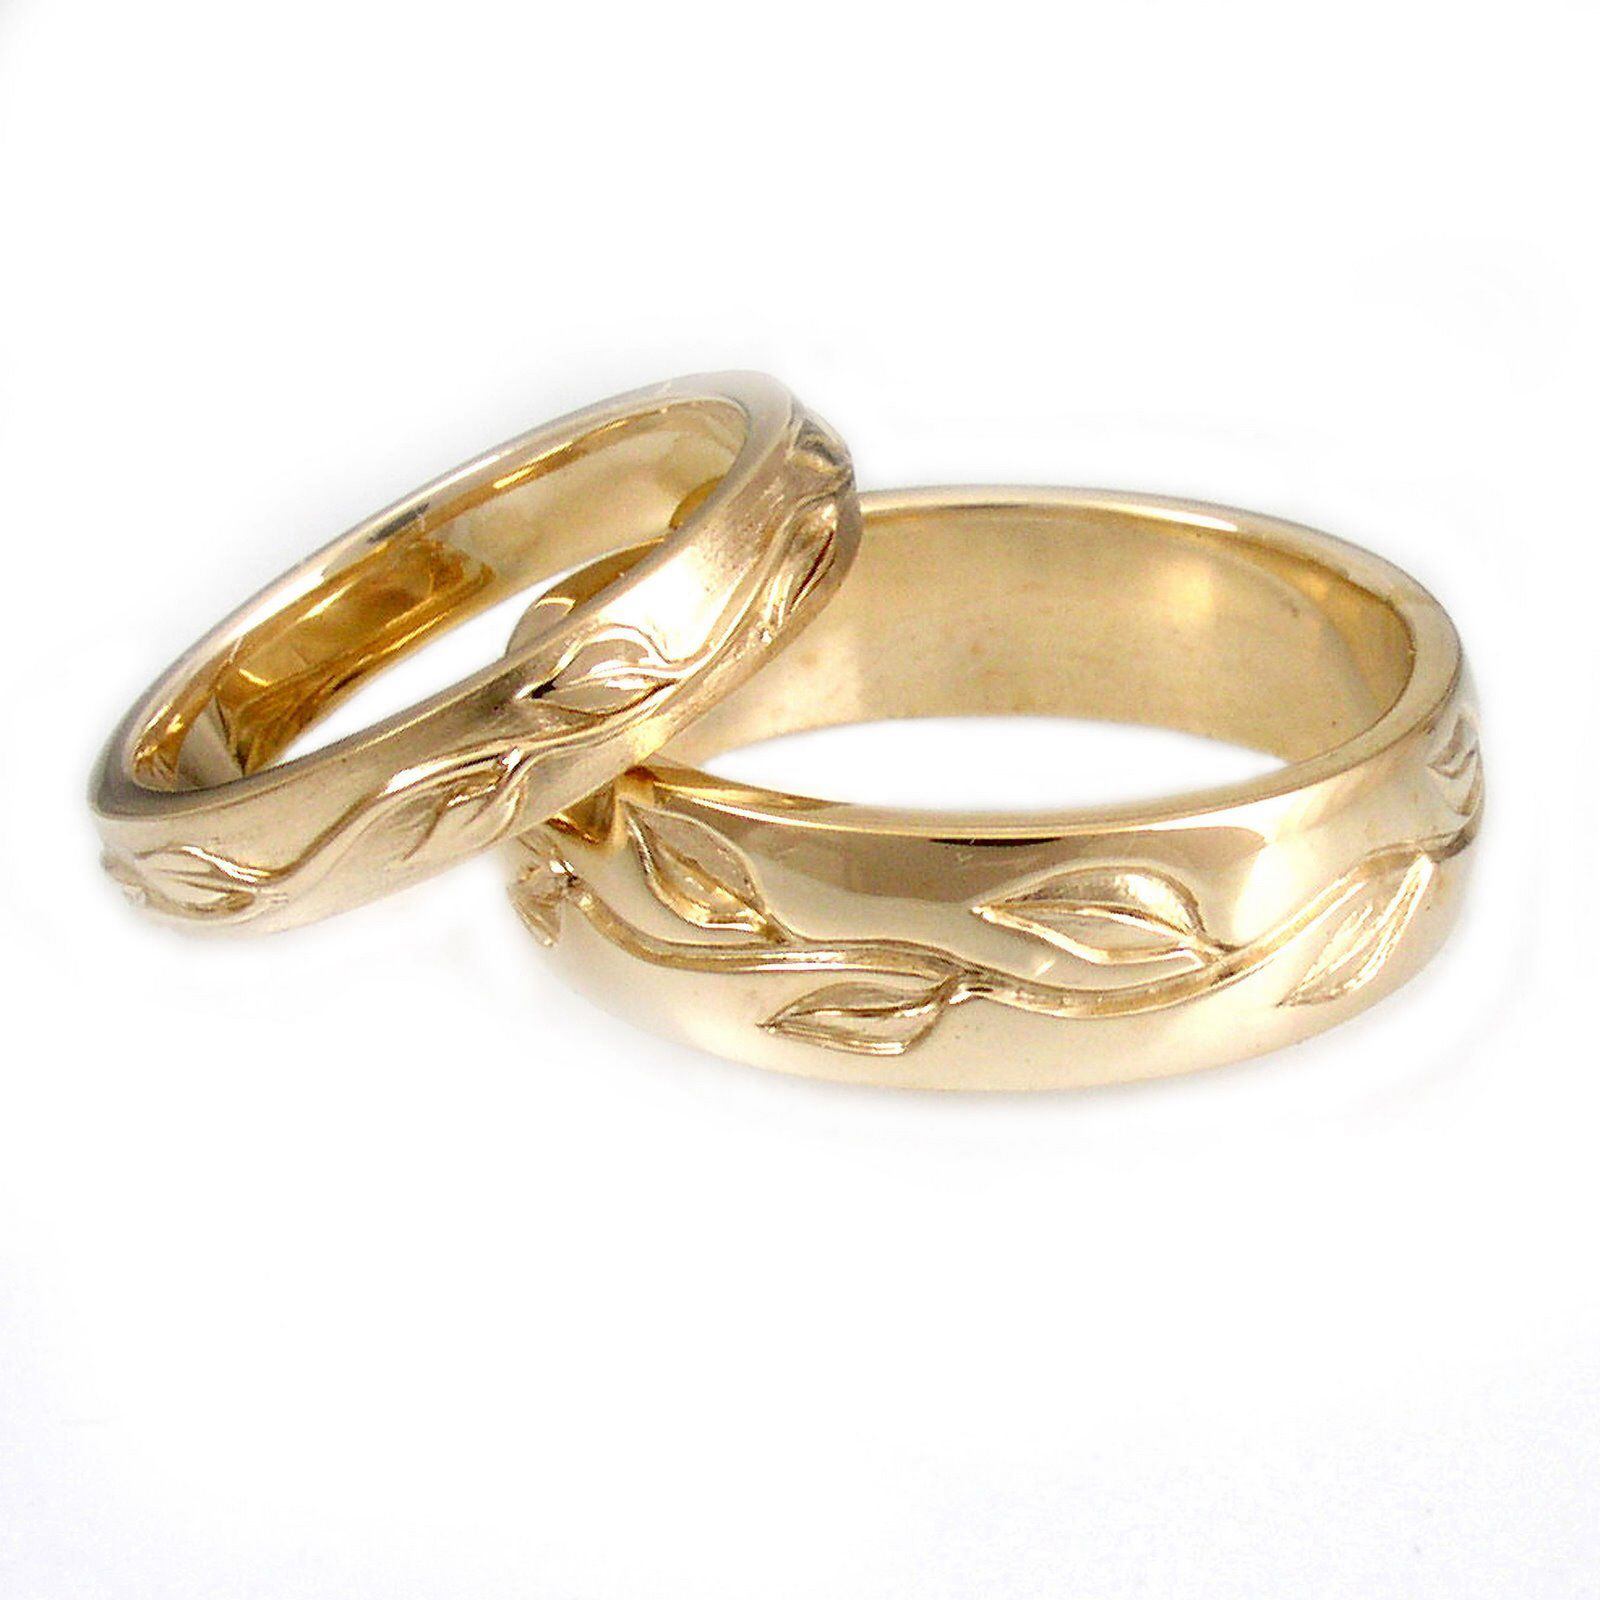 Engraving Ideas For Wedding Bands: Engraved Gold Wedding Bands